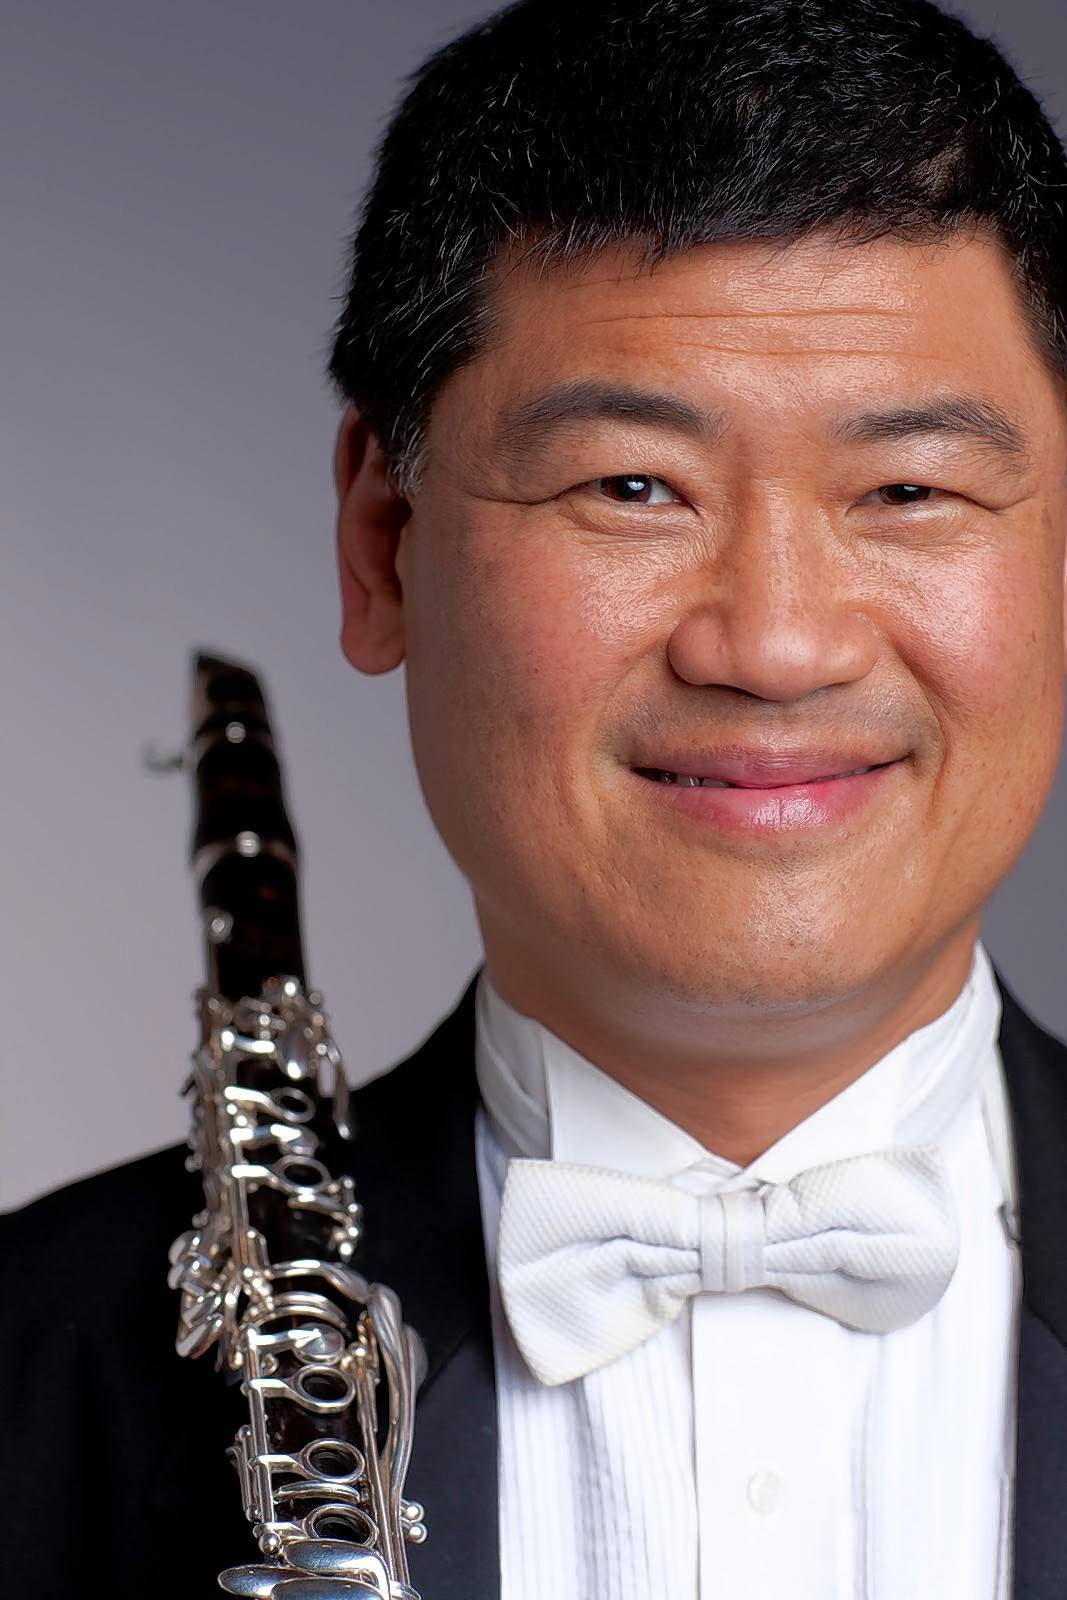 Chicago Symphony Orchestra clarinetist John Bruce Yeh is a guest soloist with the Lake Forest Symphony.